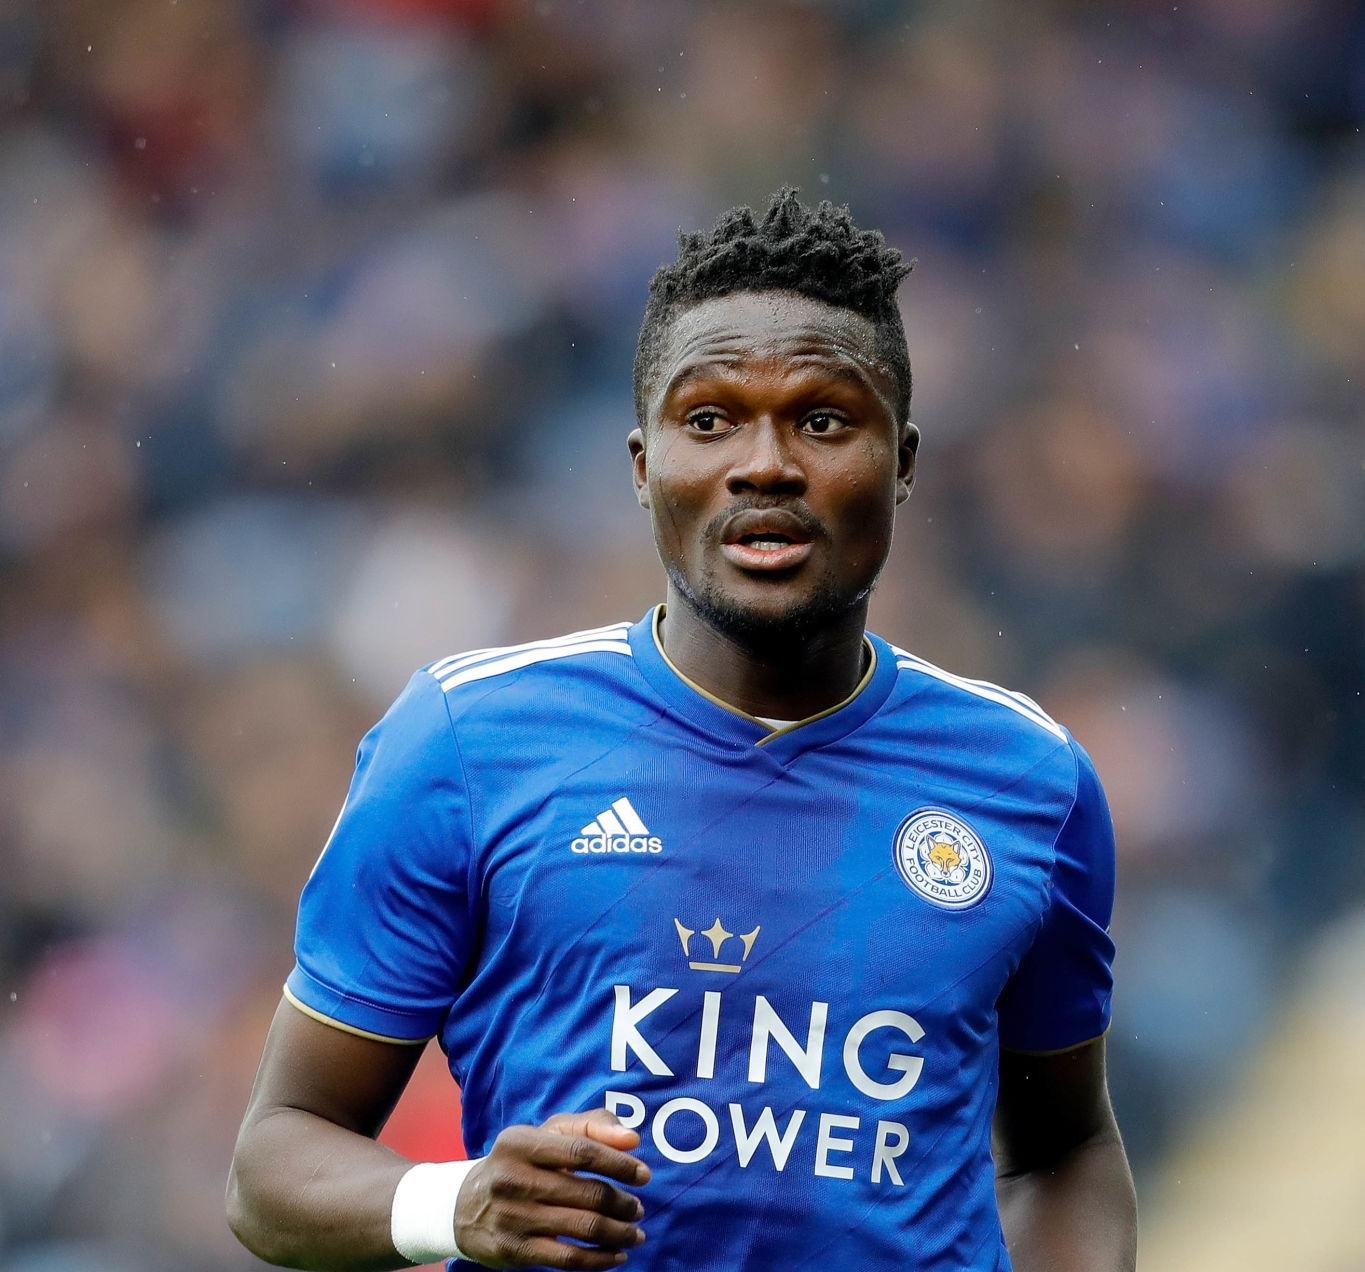 Ghana's Daniel Amartey among low earning players at Leicester City